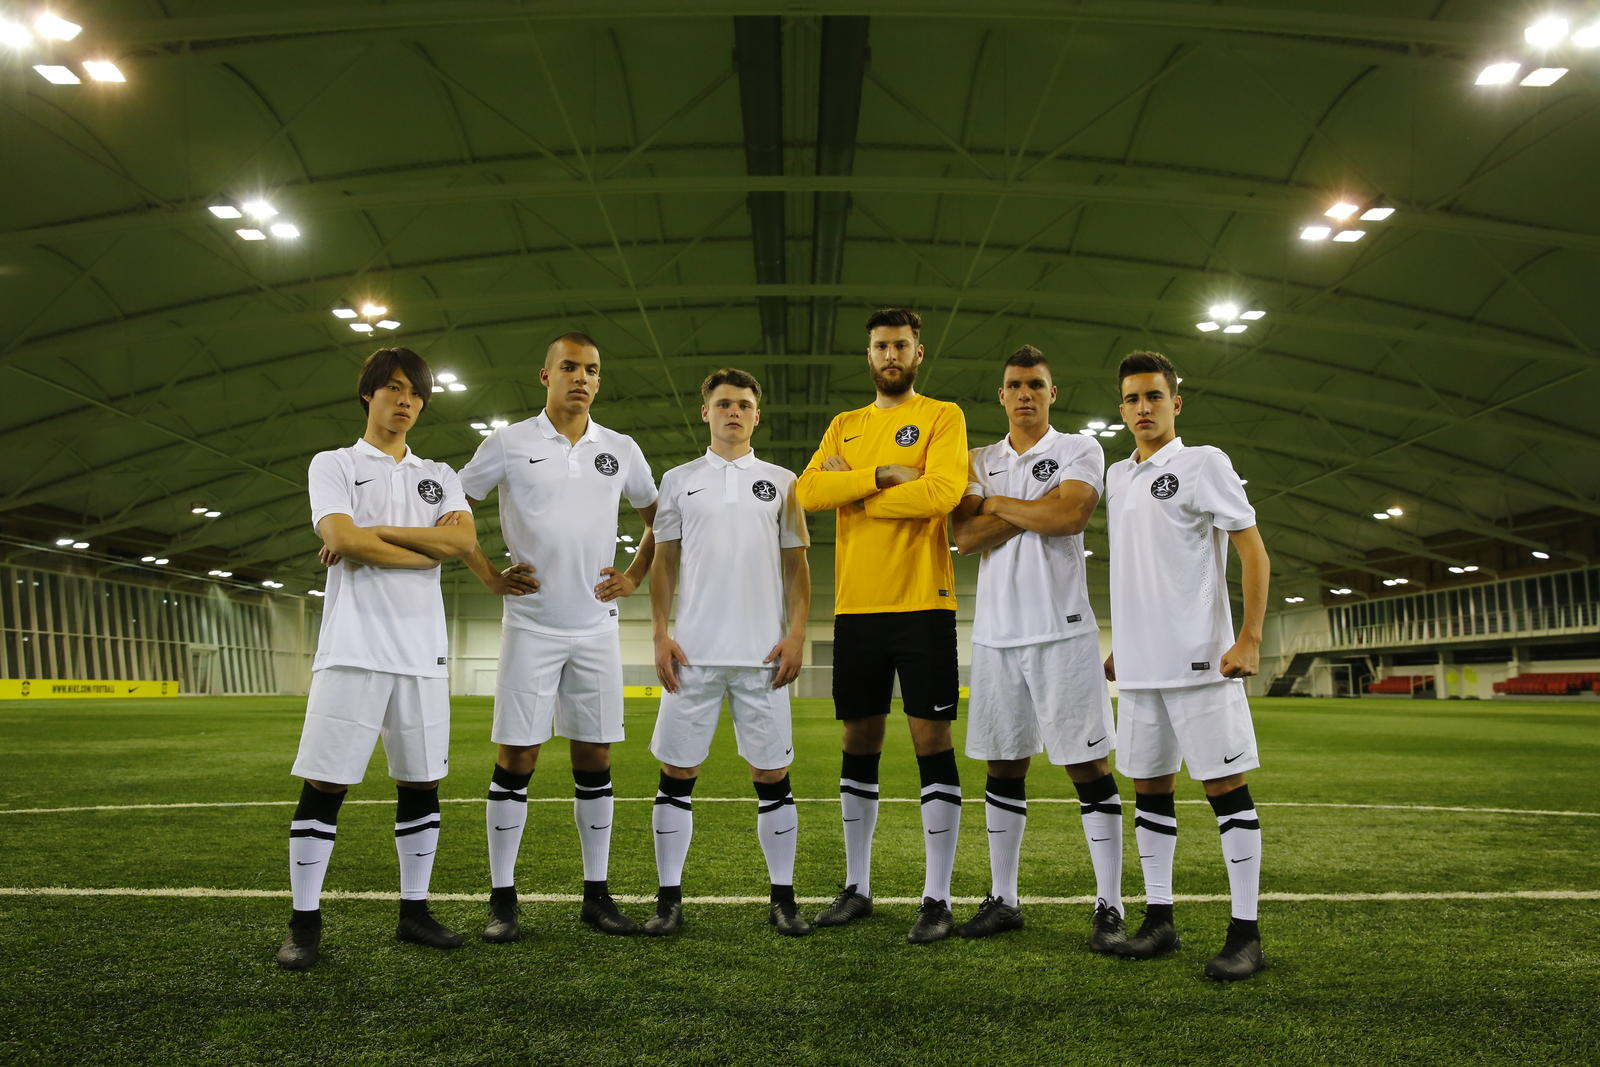 Most Wanted Global Showcase winners at St George's Park, home of The Nike  Academy